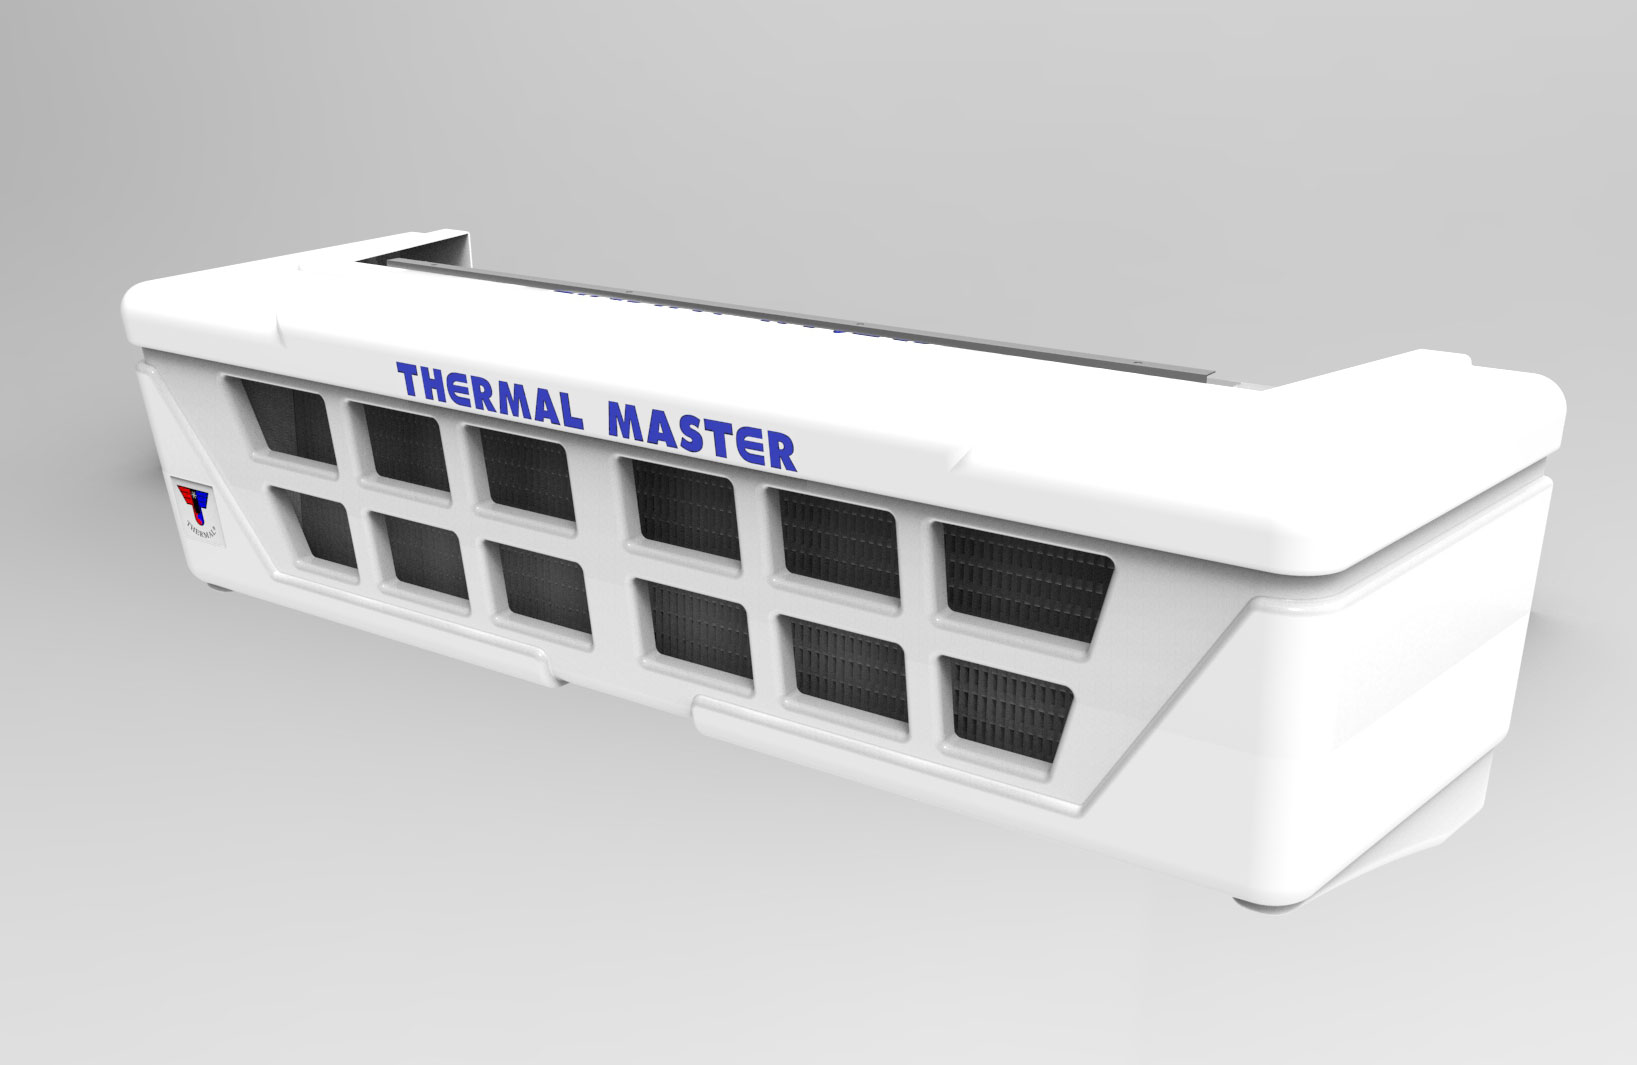 Thermal Master T3500